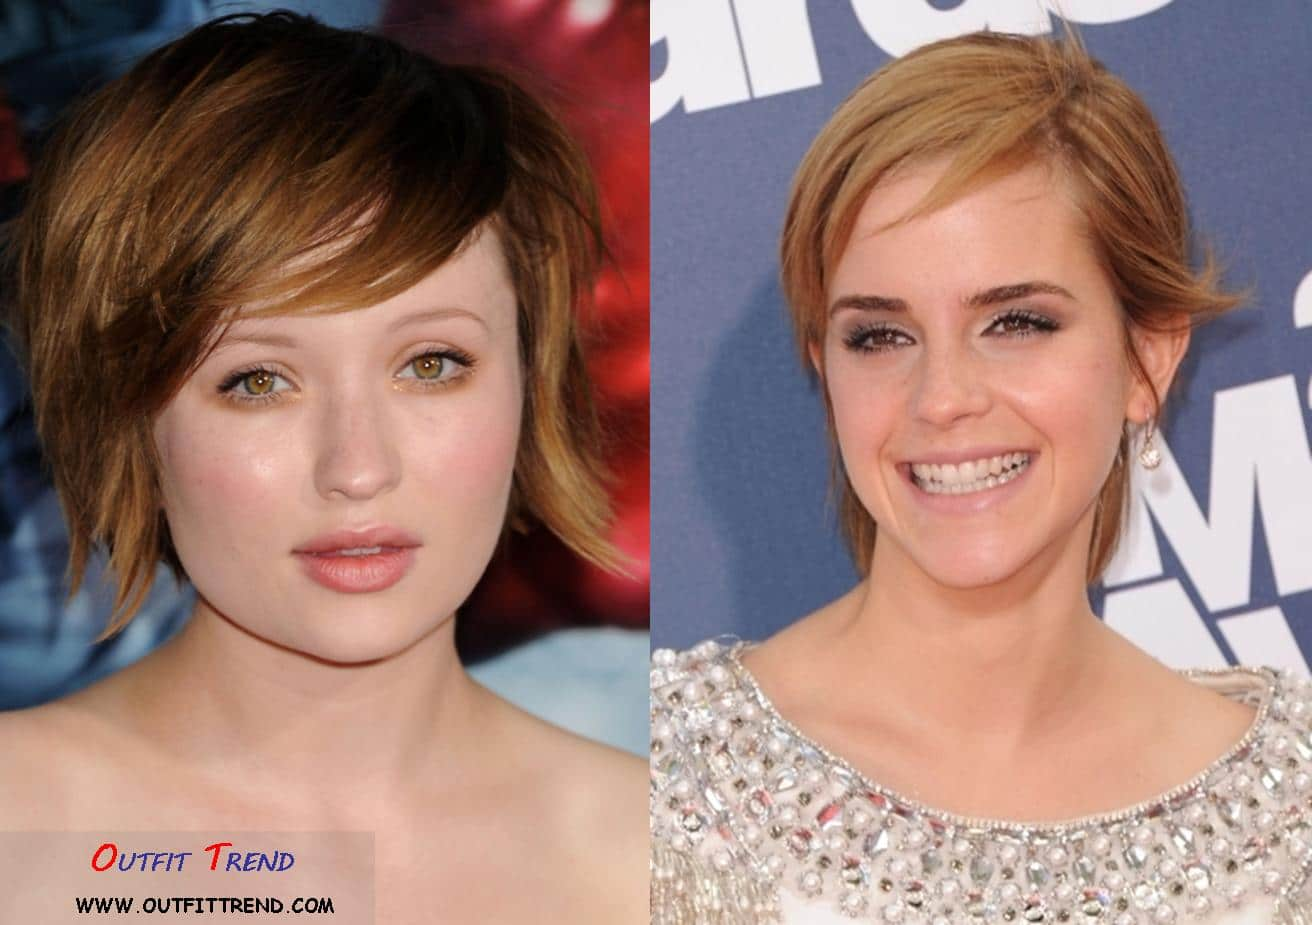 Cute-Short-Hair-Styles 14 Top Celebrities Inspired Short Hairstyles To Follow This Year